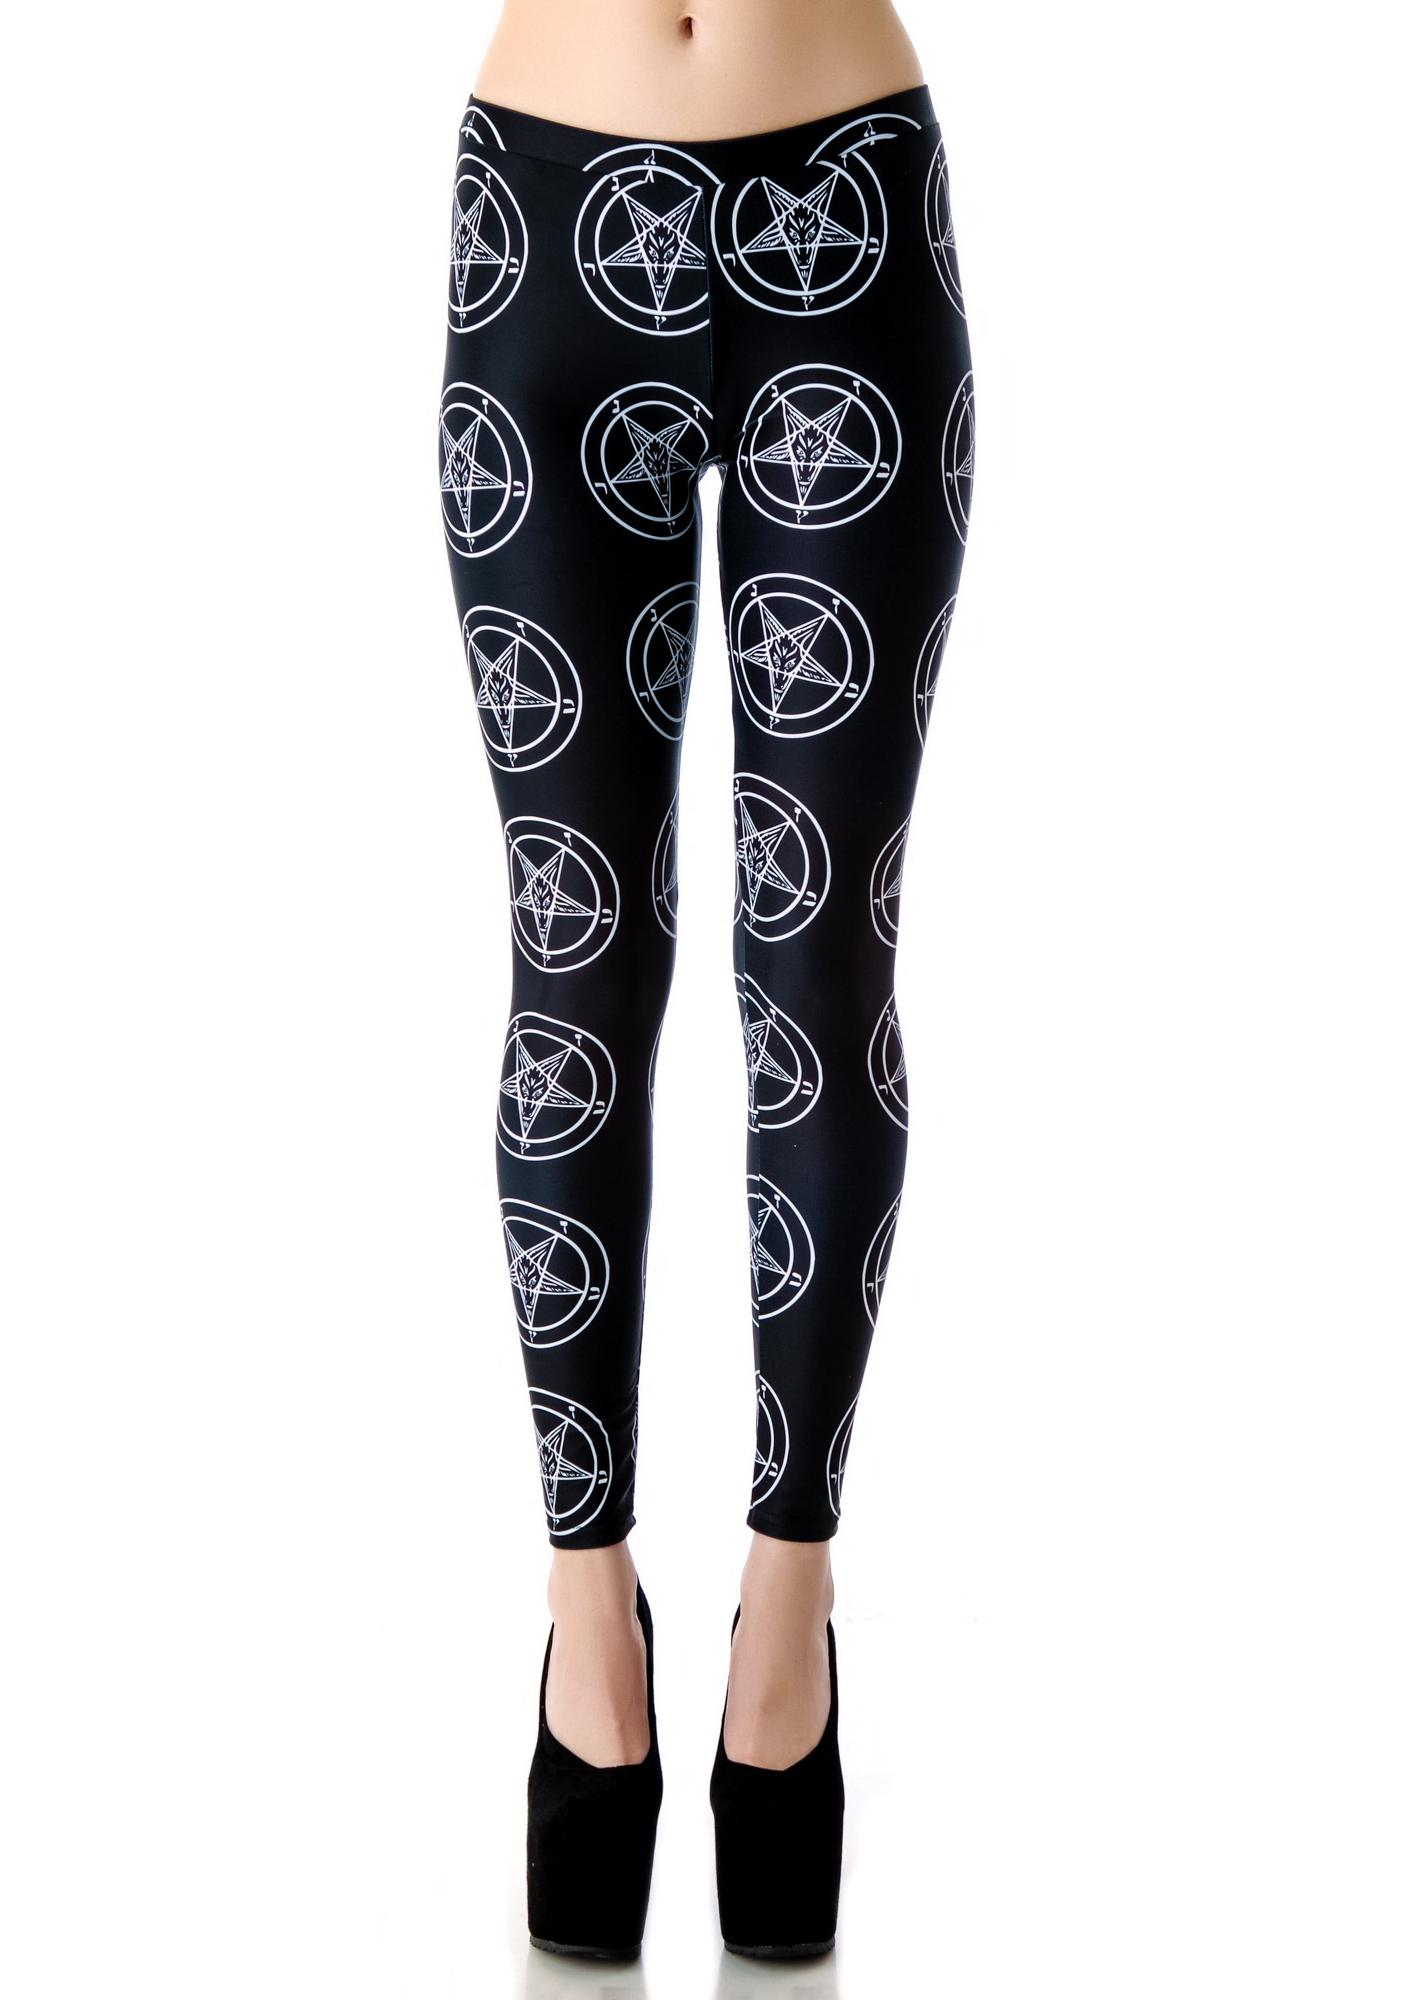 Tentacle Threads Baphomet Pentagram Leggings